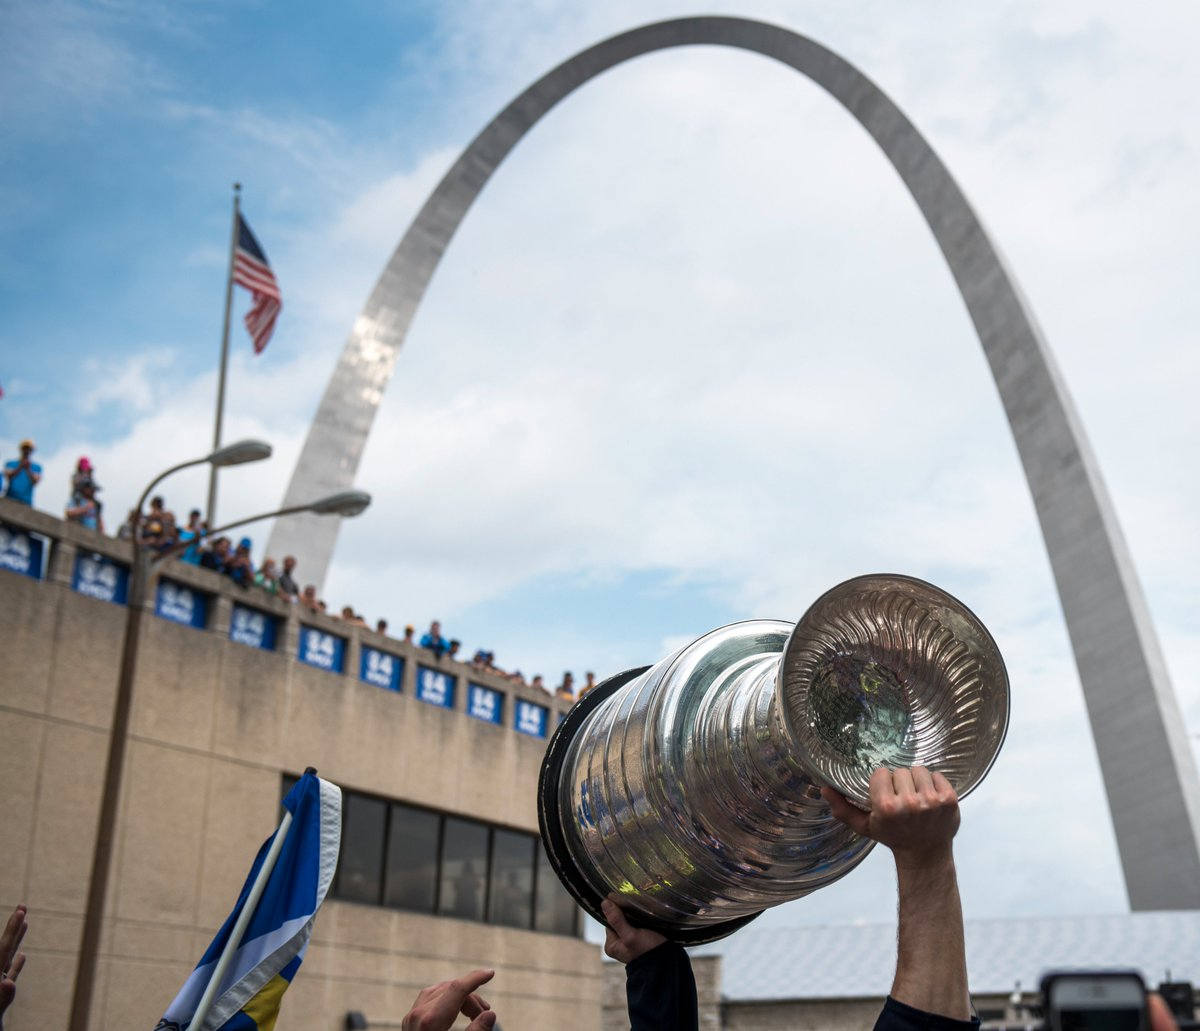 The #StanleyCup is heading down Clark St. to Busch Stadium! It will be in attendance Wednesday for ceremonies before and during the @Cardinals game vs. Oakland. atmlb.com/31Snexb